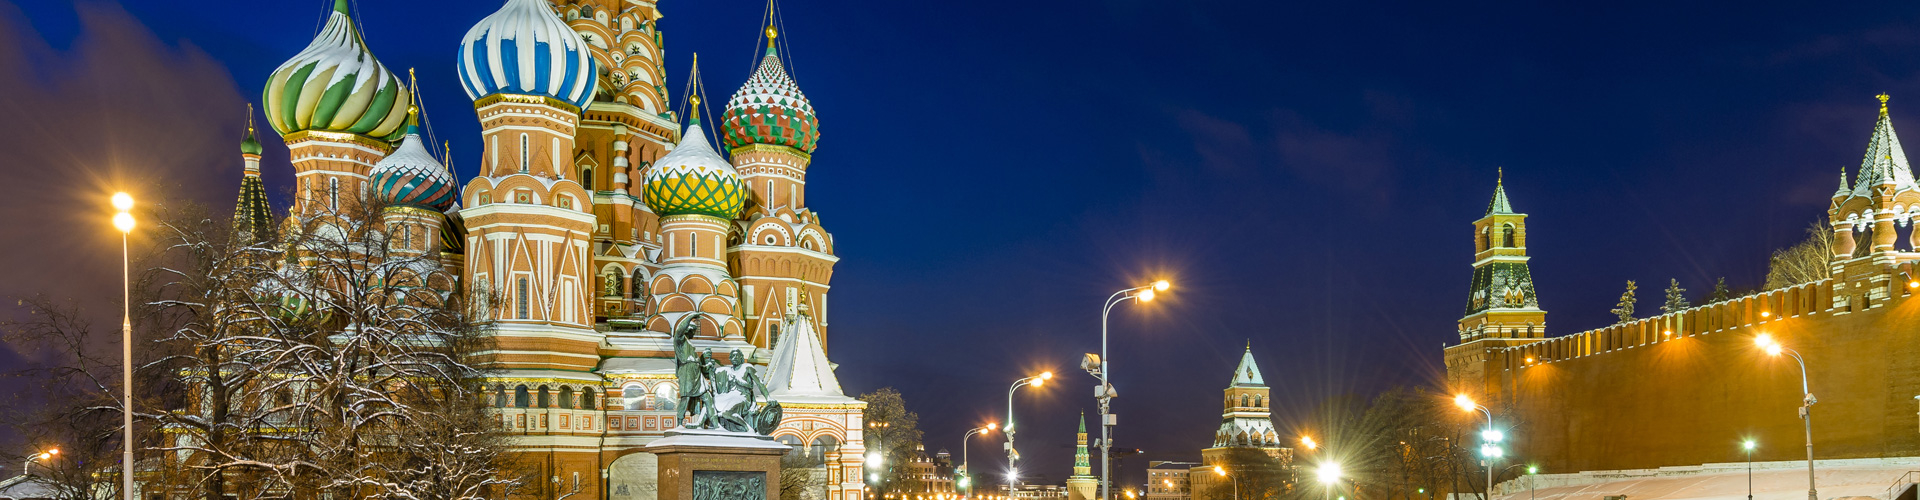 easy pace russia with christmas markets winter 2018 19 9 days - Russia Christmas